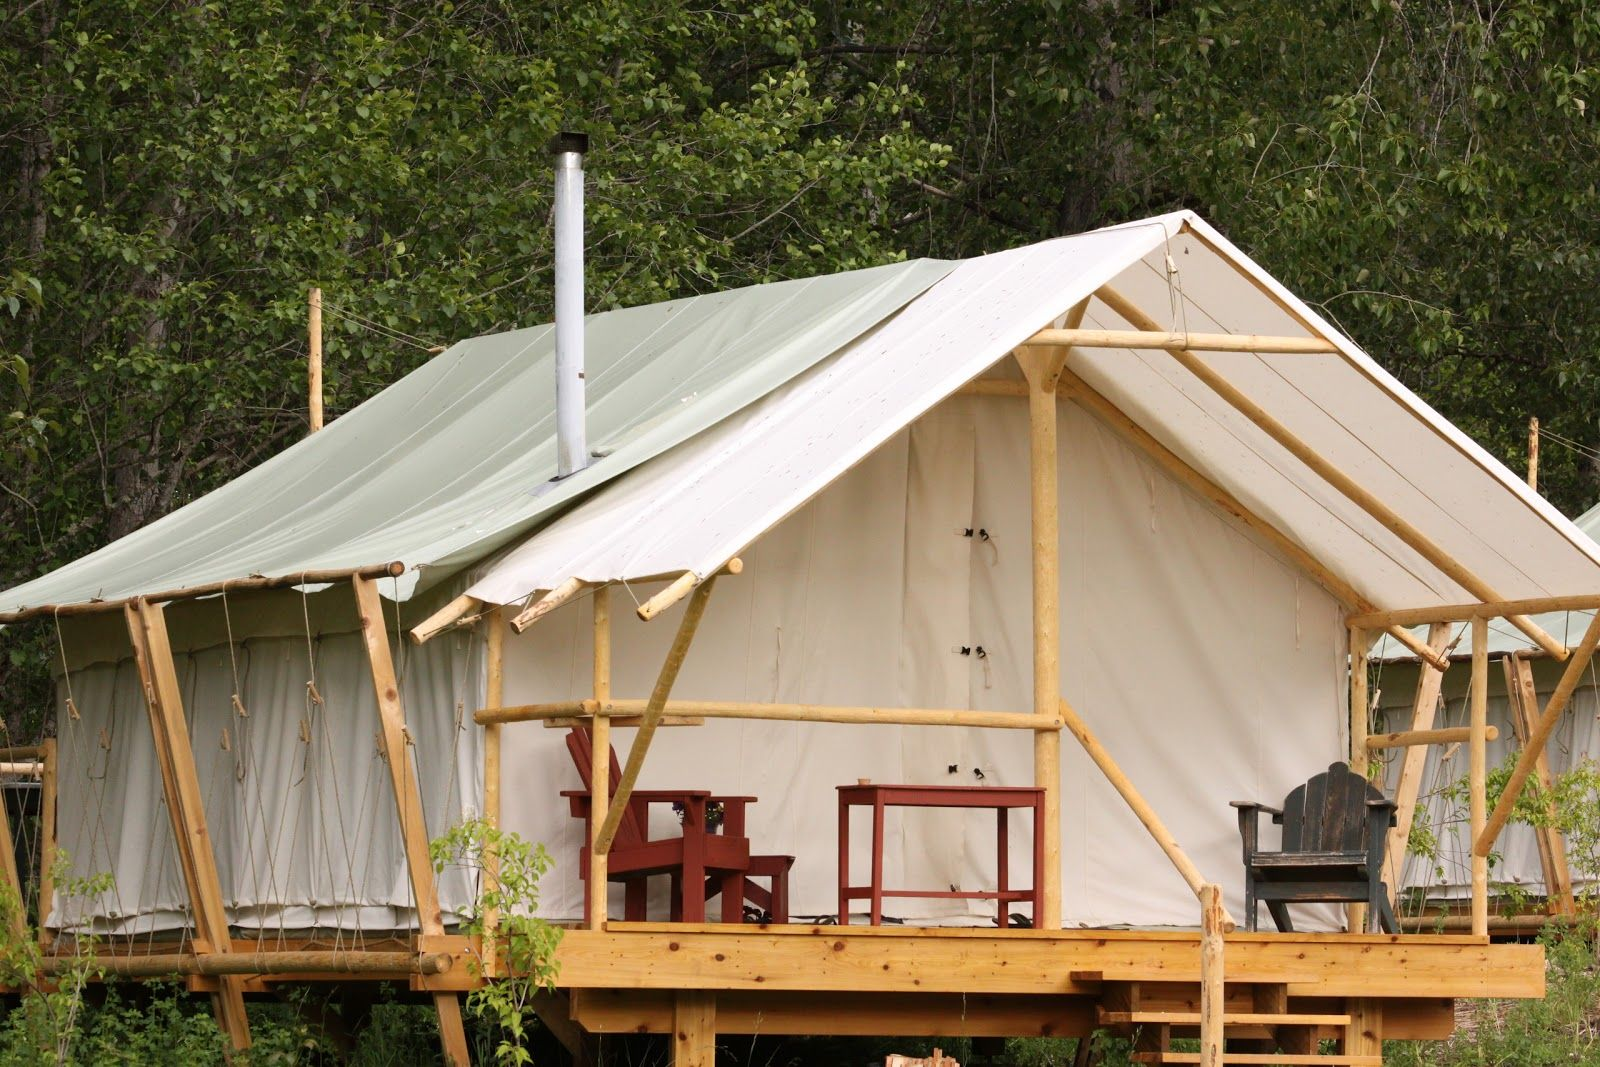 tent living year round - Google Search & tent living year round - Google Search | Tent Retreats | Pinterest ...